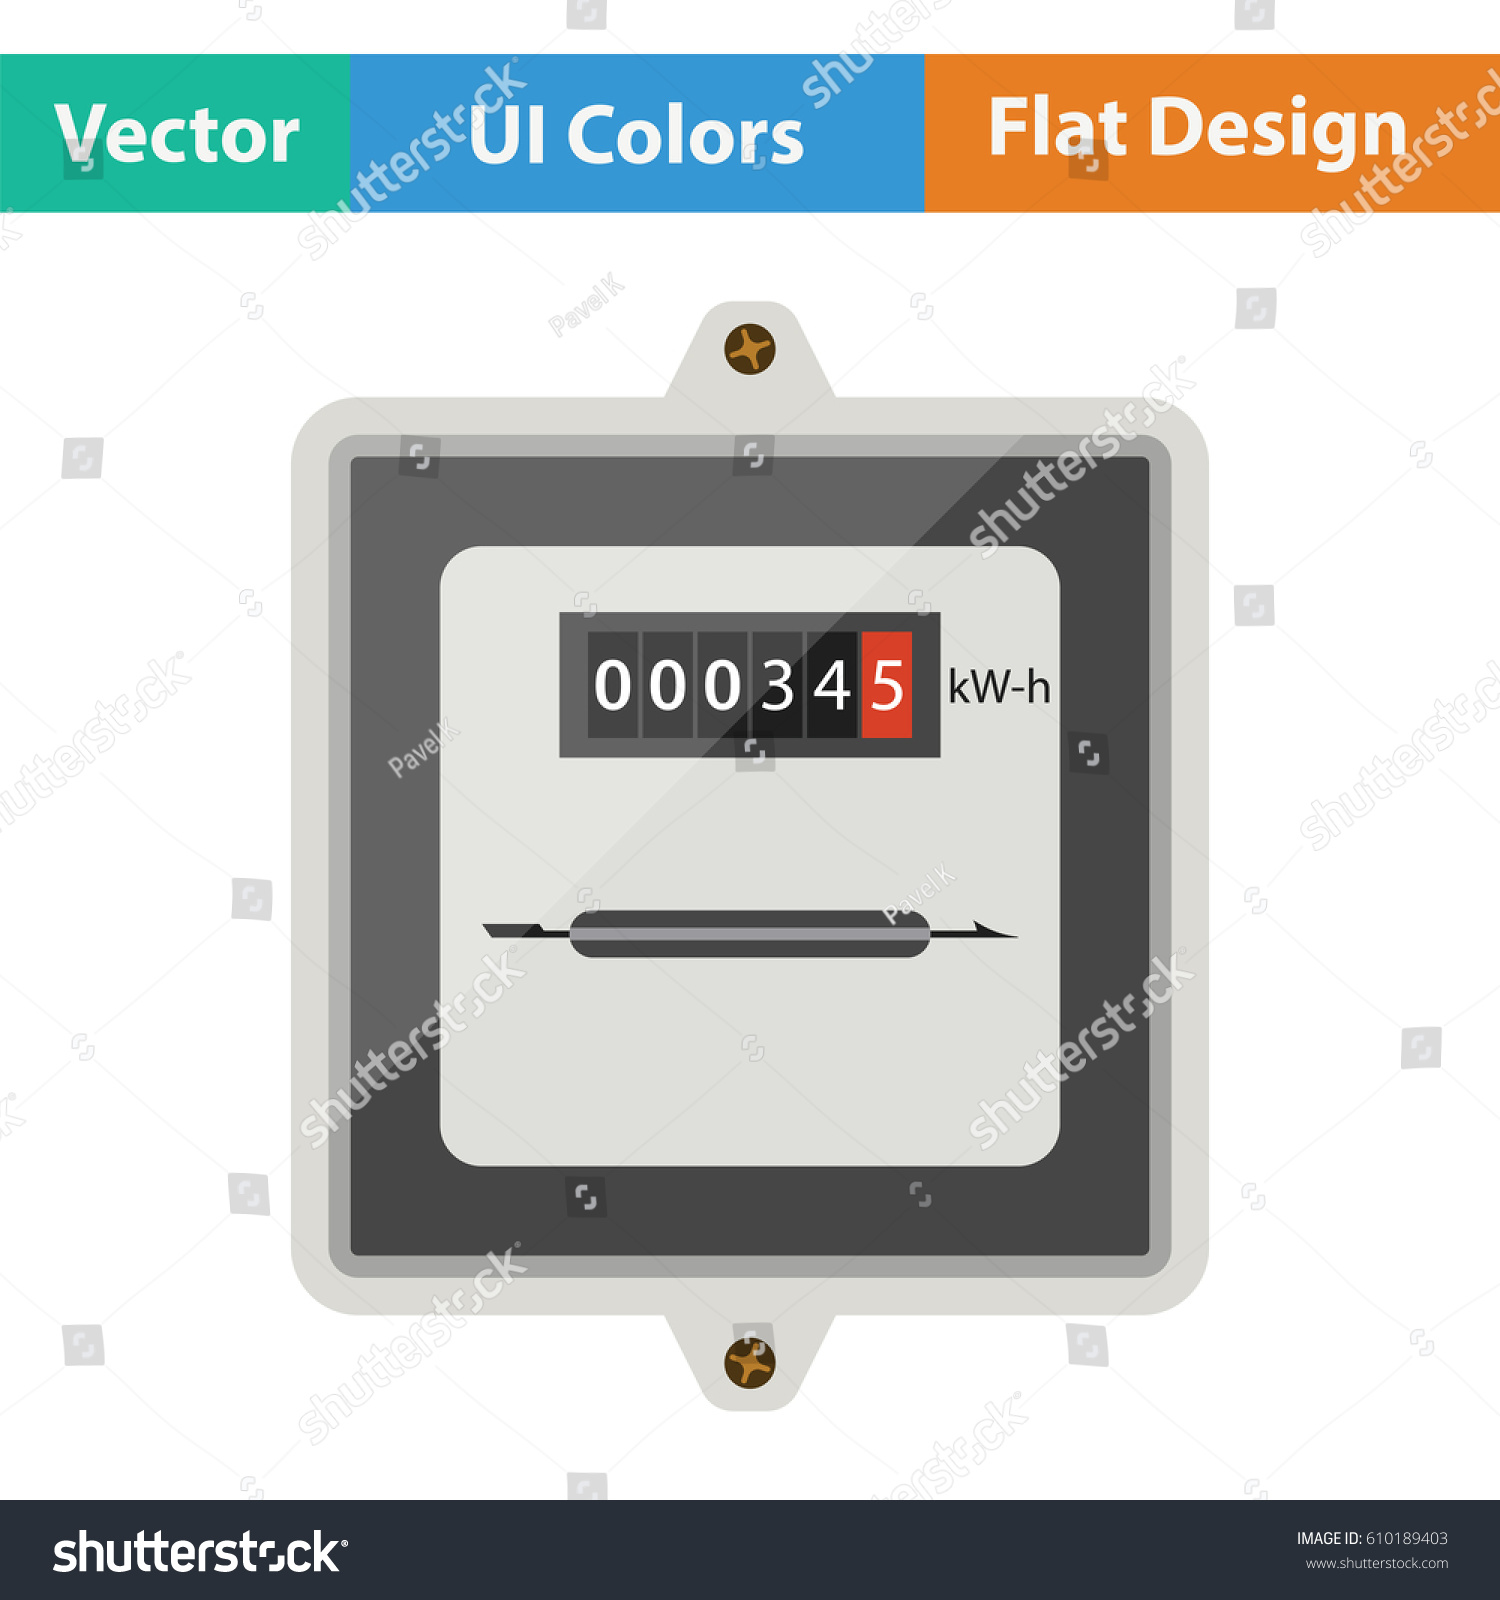 Electric Meter Icon Flat Design Vector Stock Vector HD (Royalty Free ...